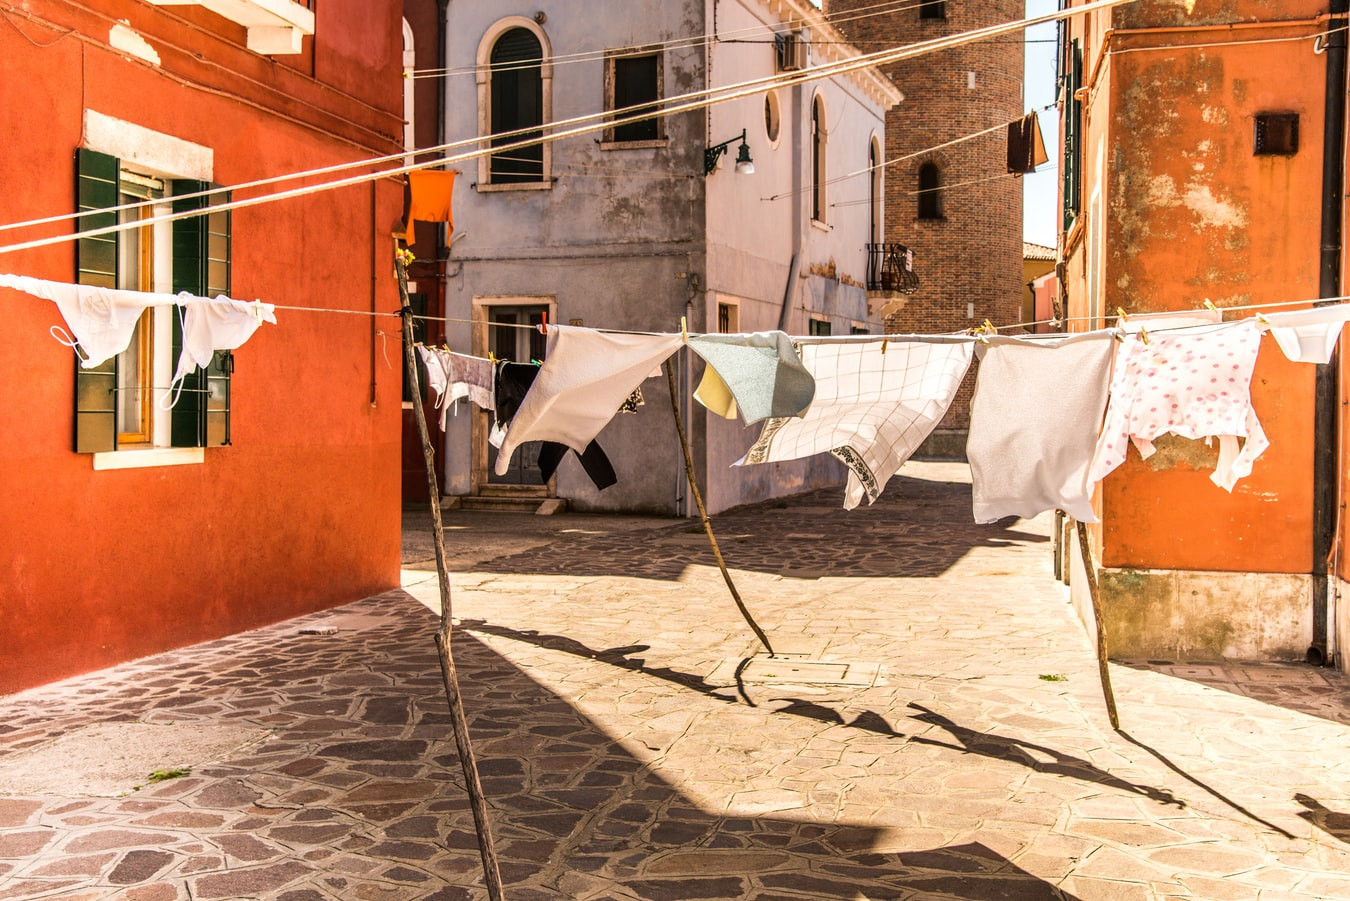 Sunny times are best if you want to dry clothes faster